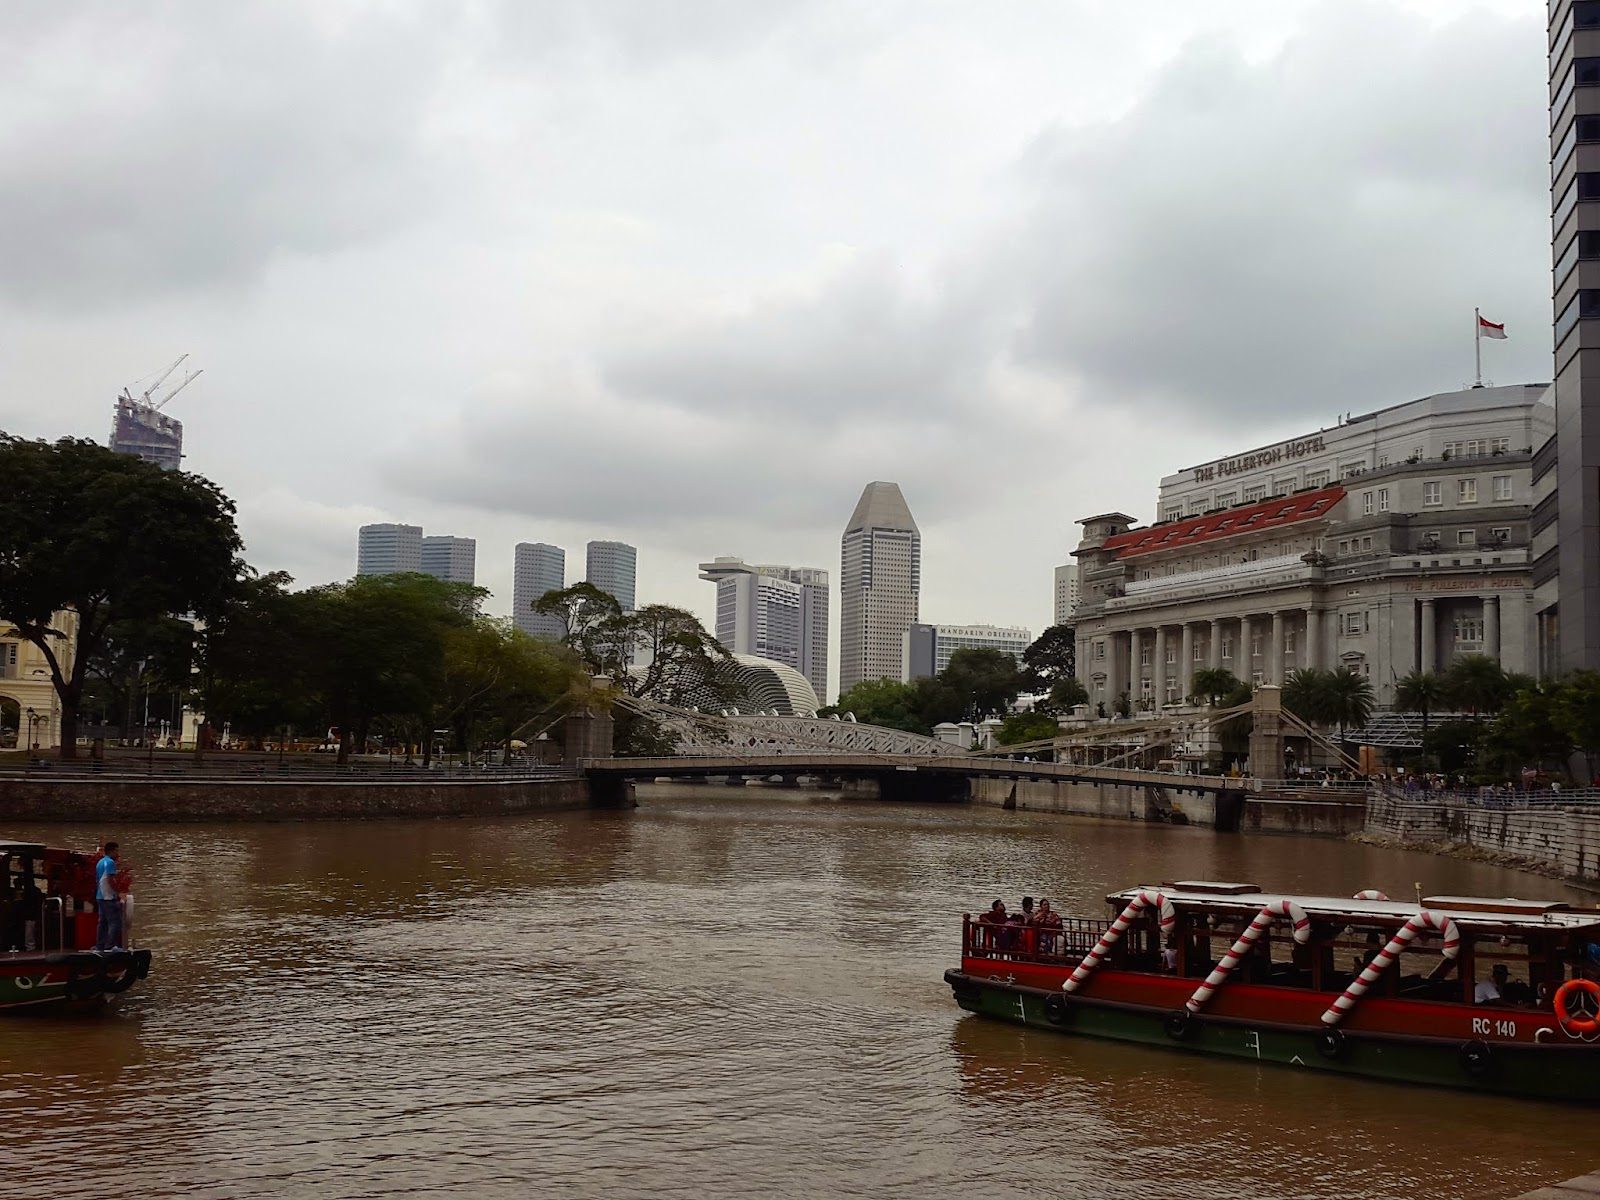 Singapore River Boat Quay Water Taxi